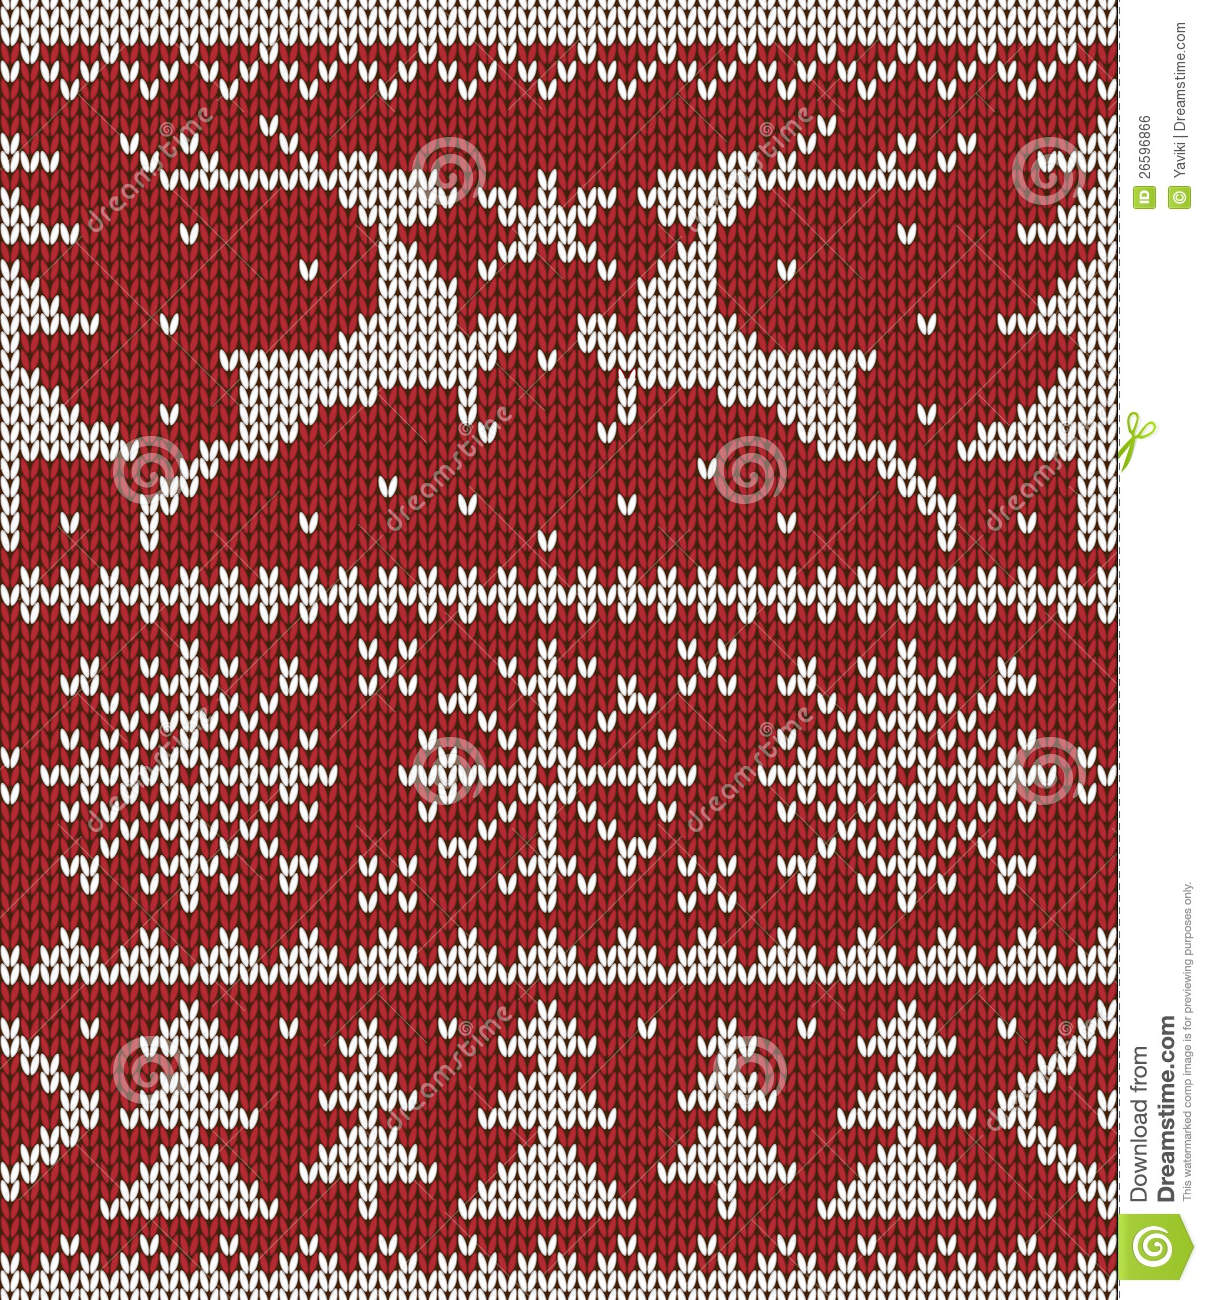 Knitted Christmas Patterns : Christmas Knitted Pattern Royalty Free Stock Image - Image: 26596866